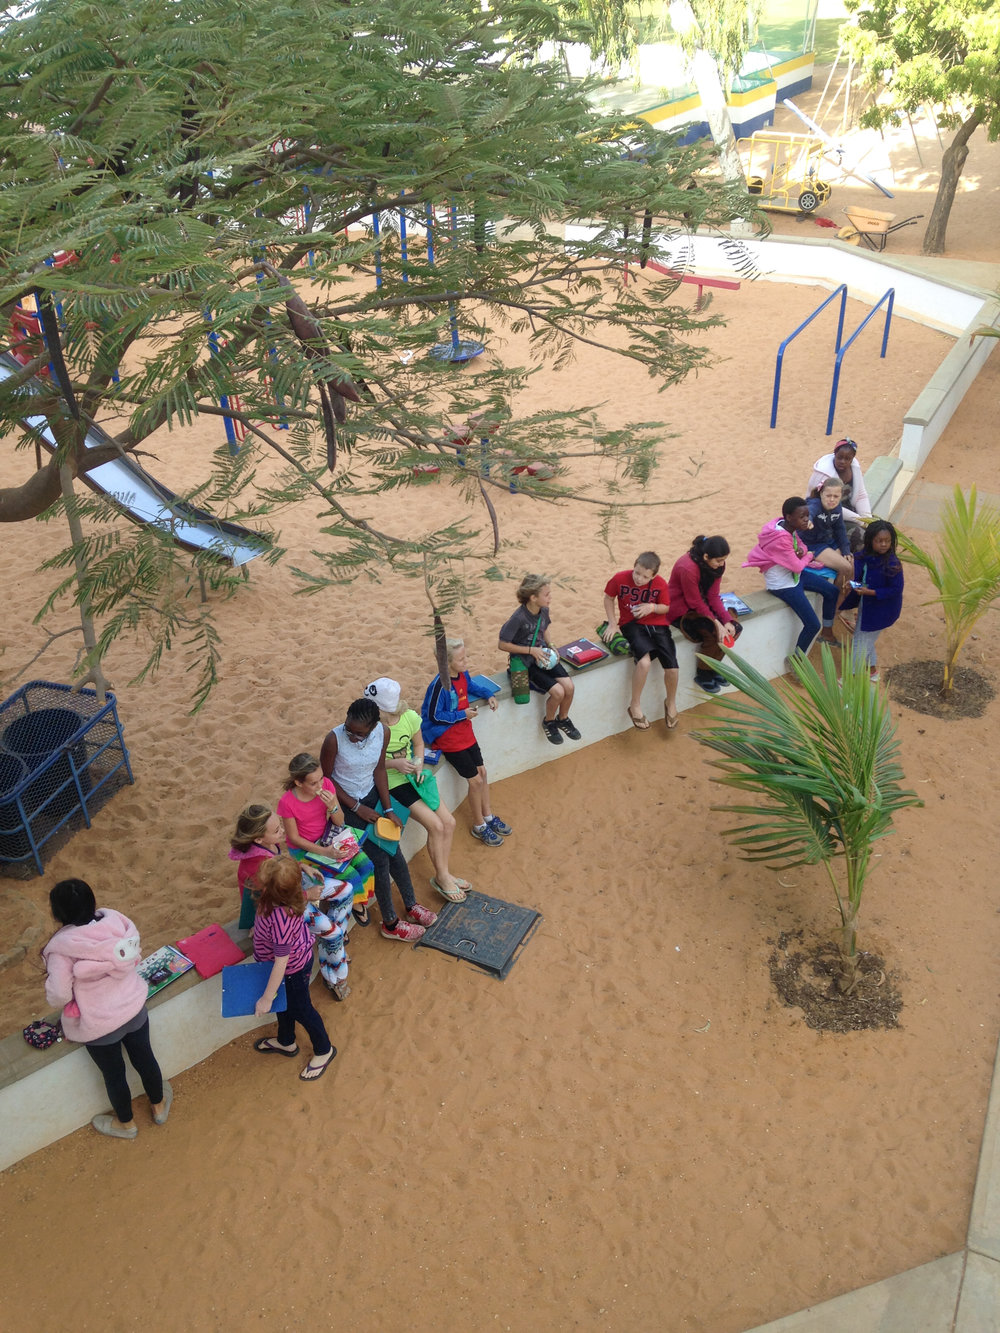 Dakar Academy is an international school in Dakar Senegal. An international community, more than 30 countries are represented in the student body.